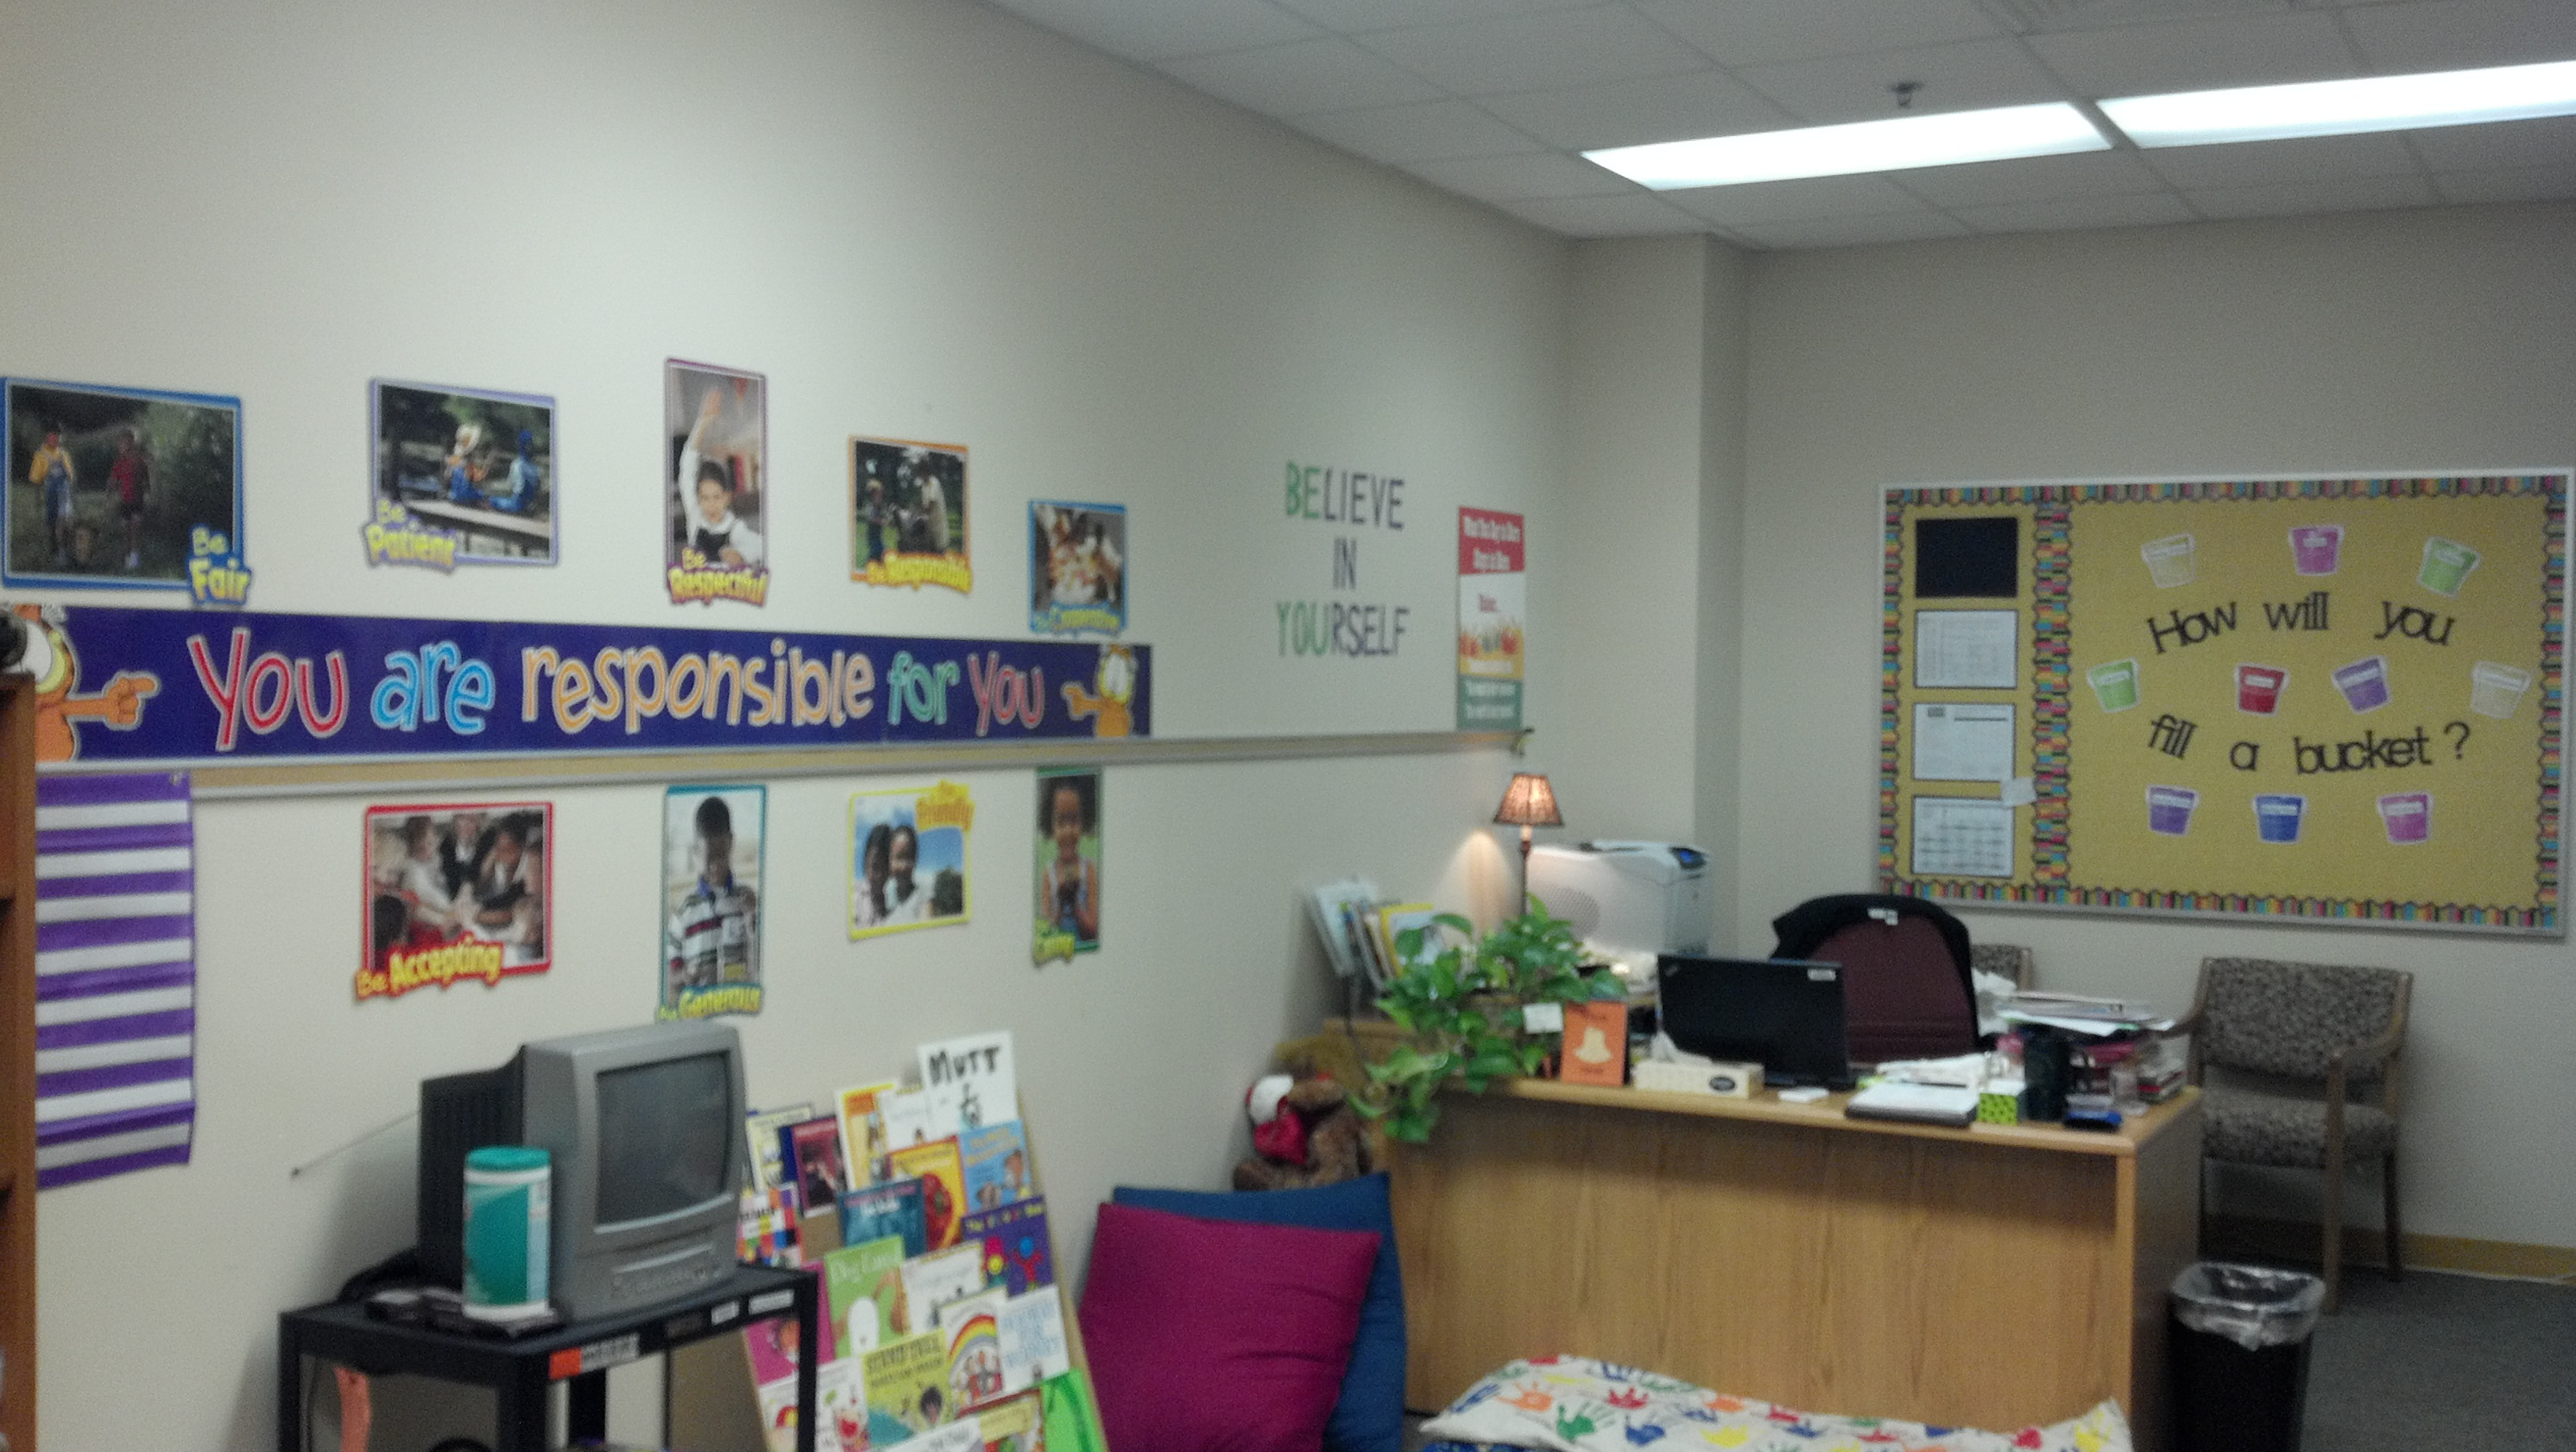 School Counseling Office Updates | Savvy School Counselor